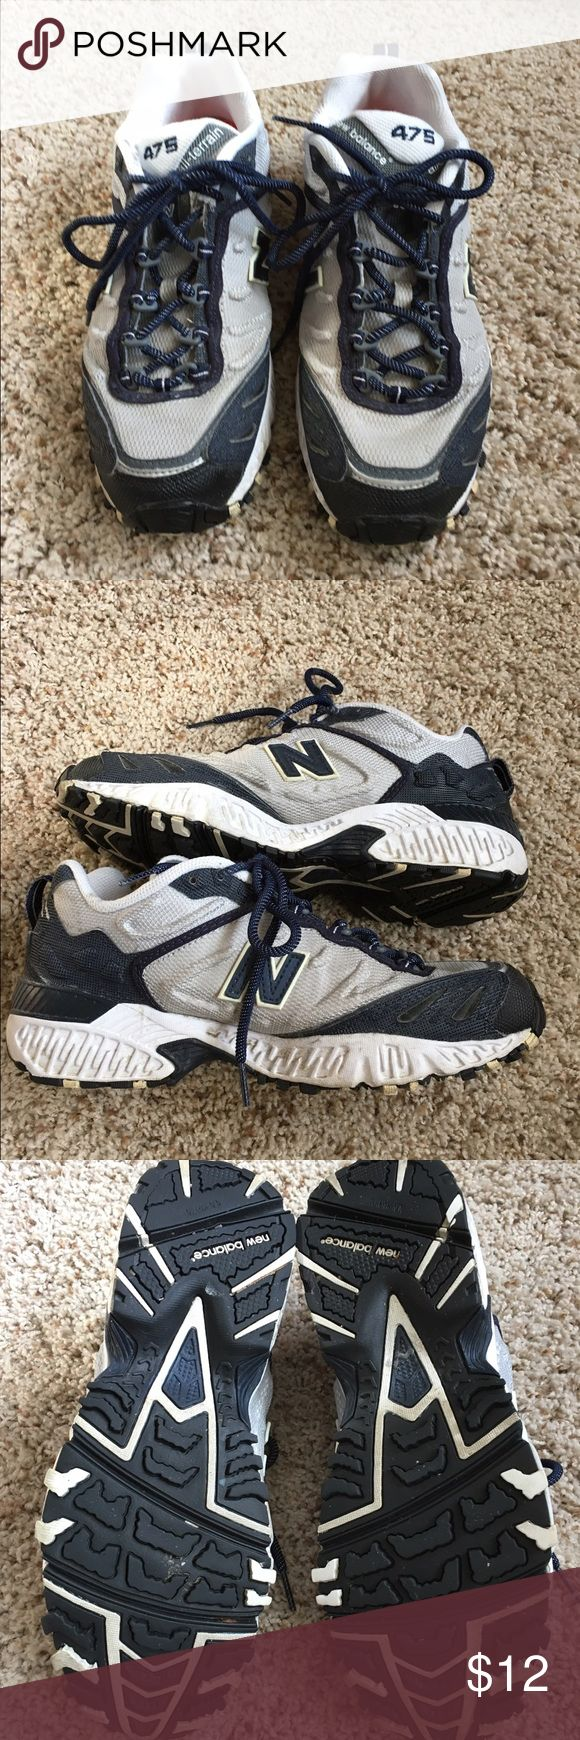 New Balance 475 all terrain men's size 8.5 Men's New Balance 475 all terrain shoe. Gently used, great condition, size 8.5.  No flaws, external dirt on inner sole could easily be removed by new owner 😊 New Balance Shoes Athletic Shoes